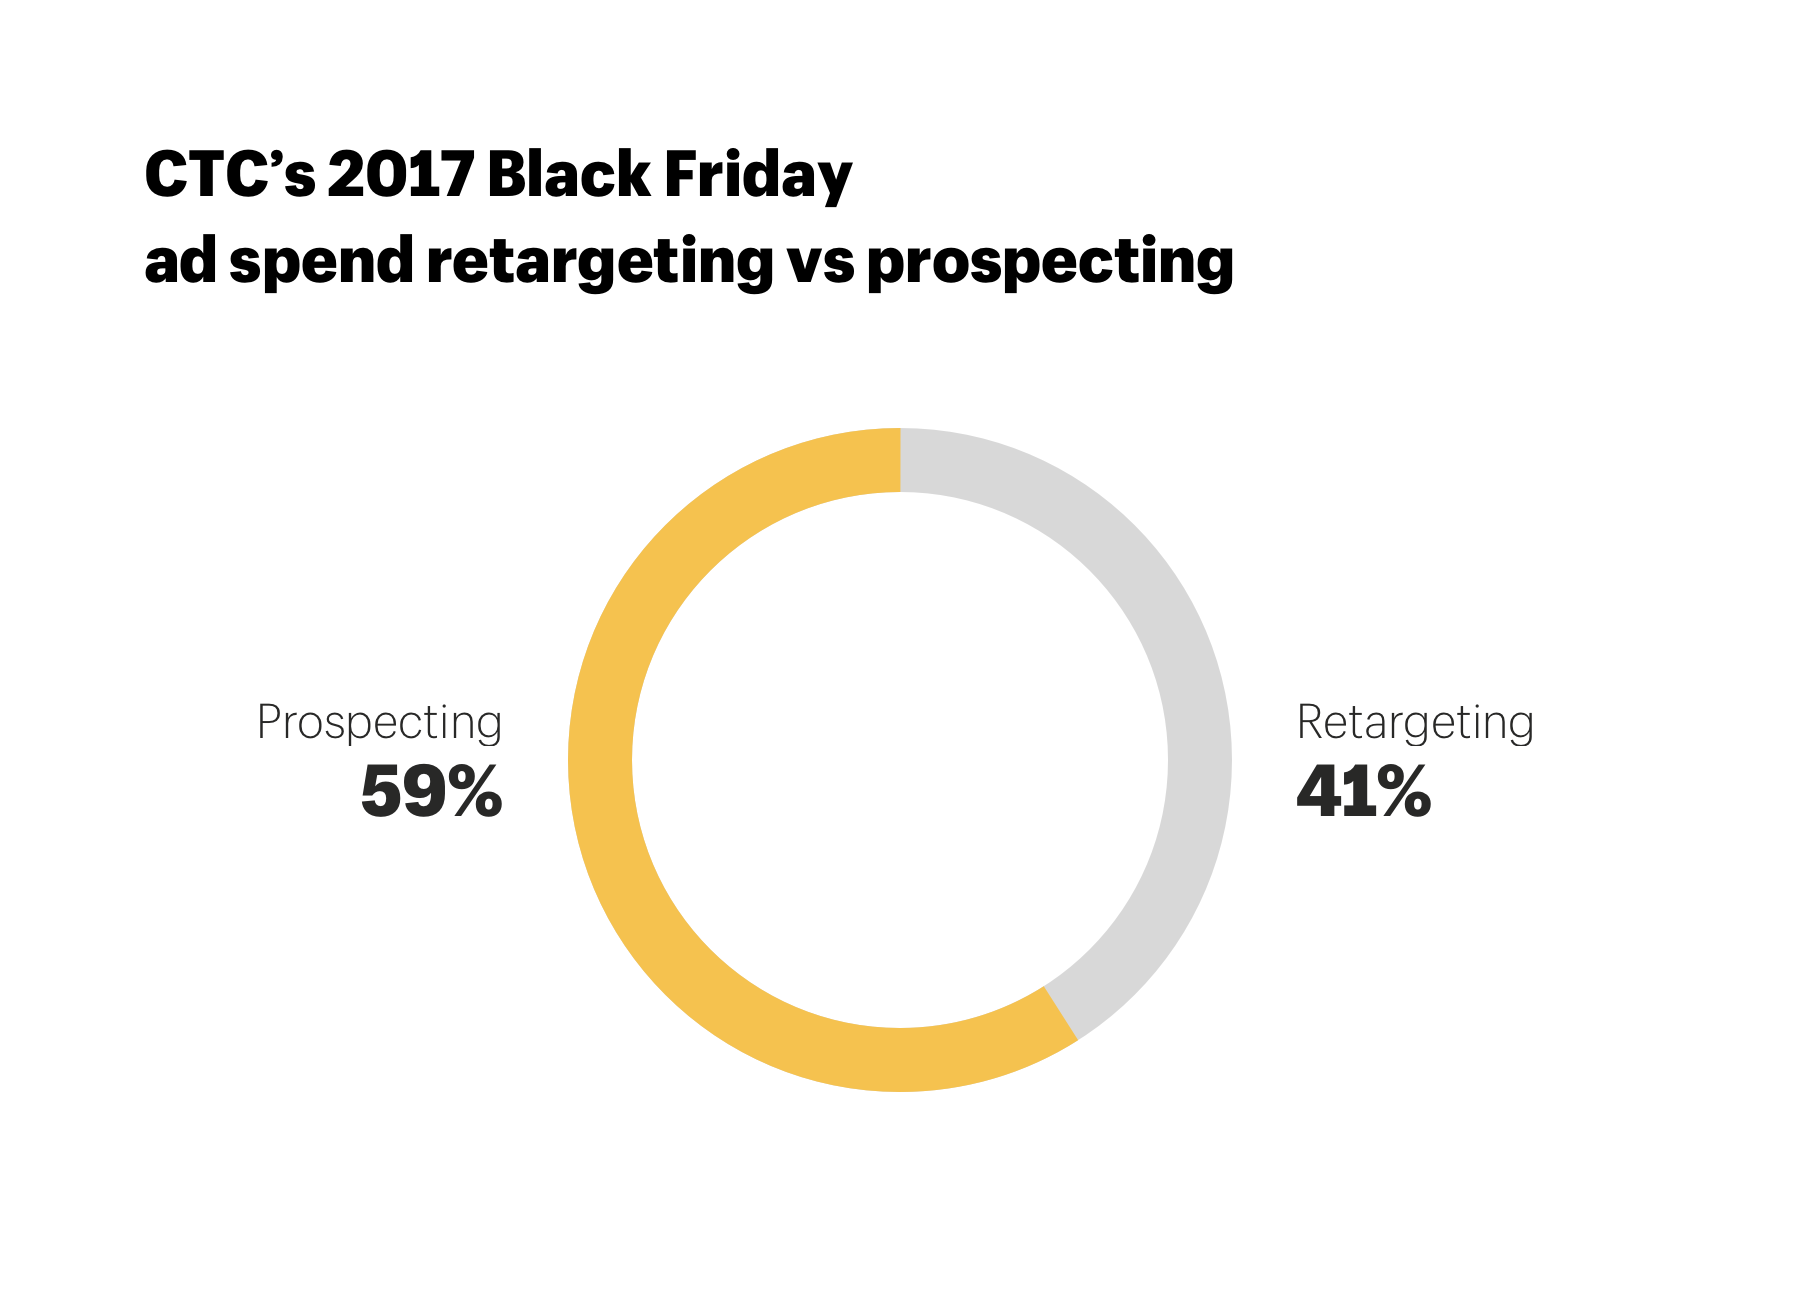 Black Friday Facebook: prospecting vs retargeting spend